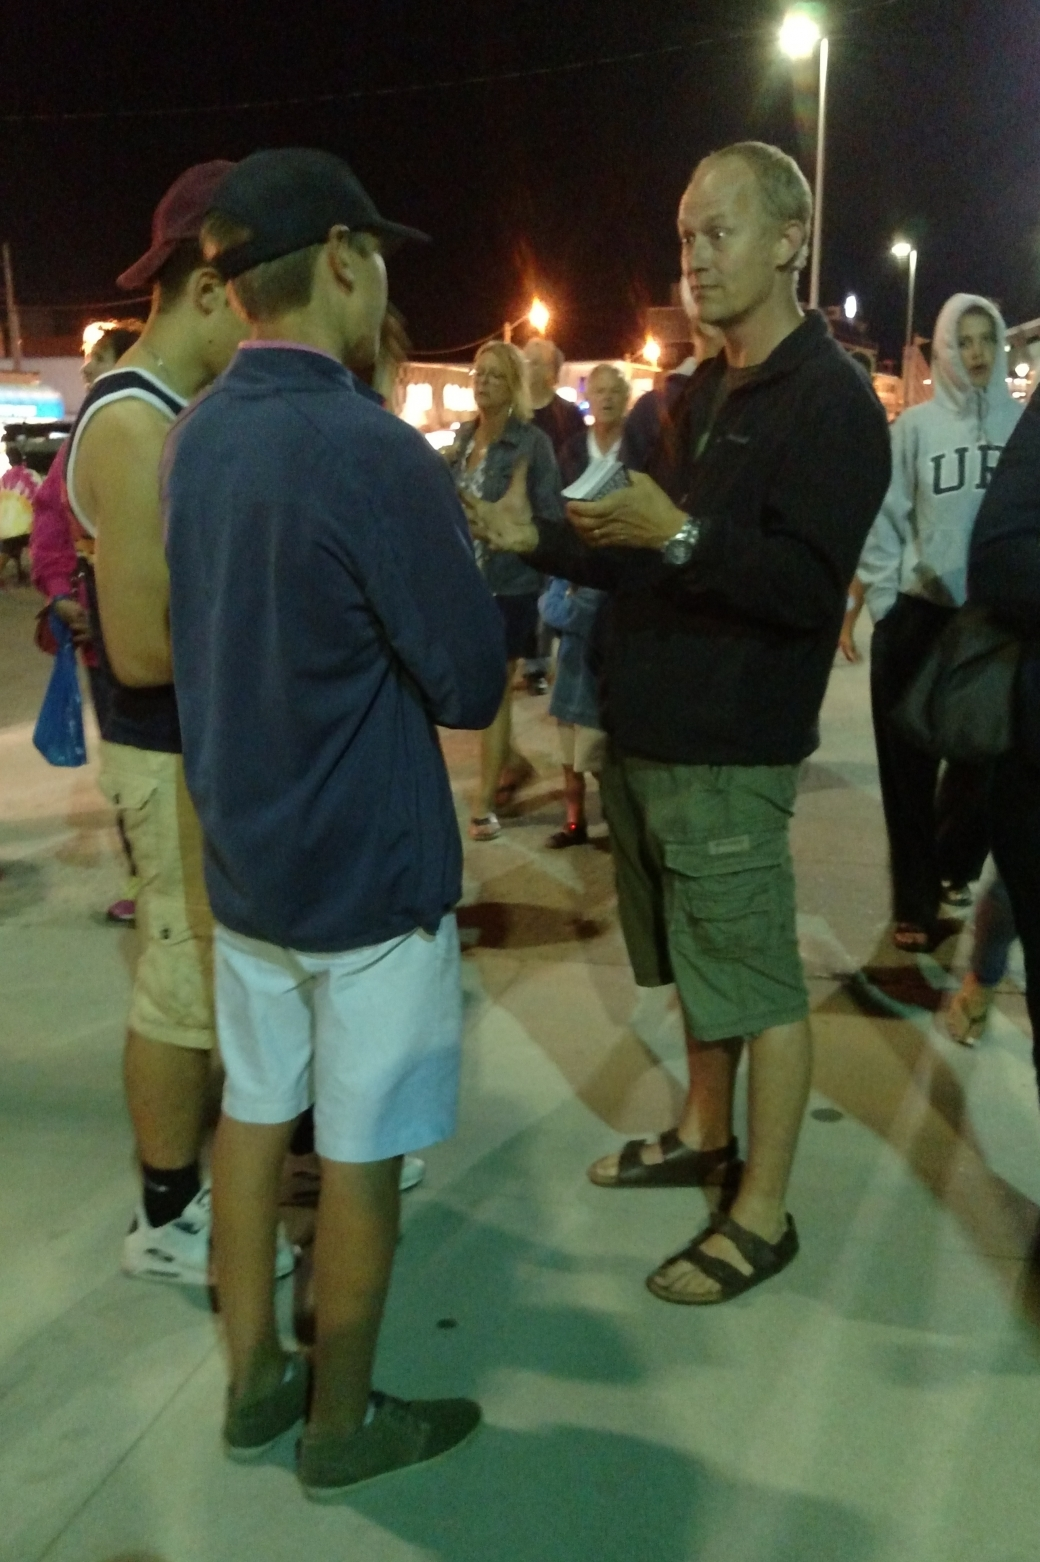 After messages, it's common for people to come ask us questions. We invite this! Here Chris is sharing the gospel with a stranger who God sent our way.